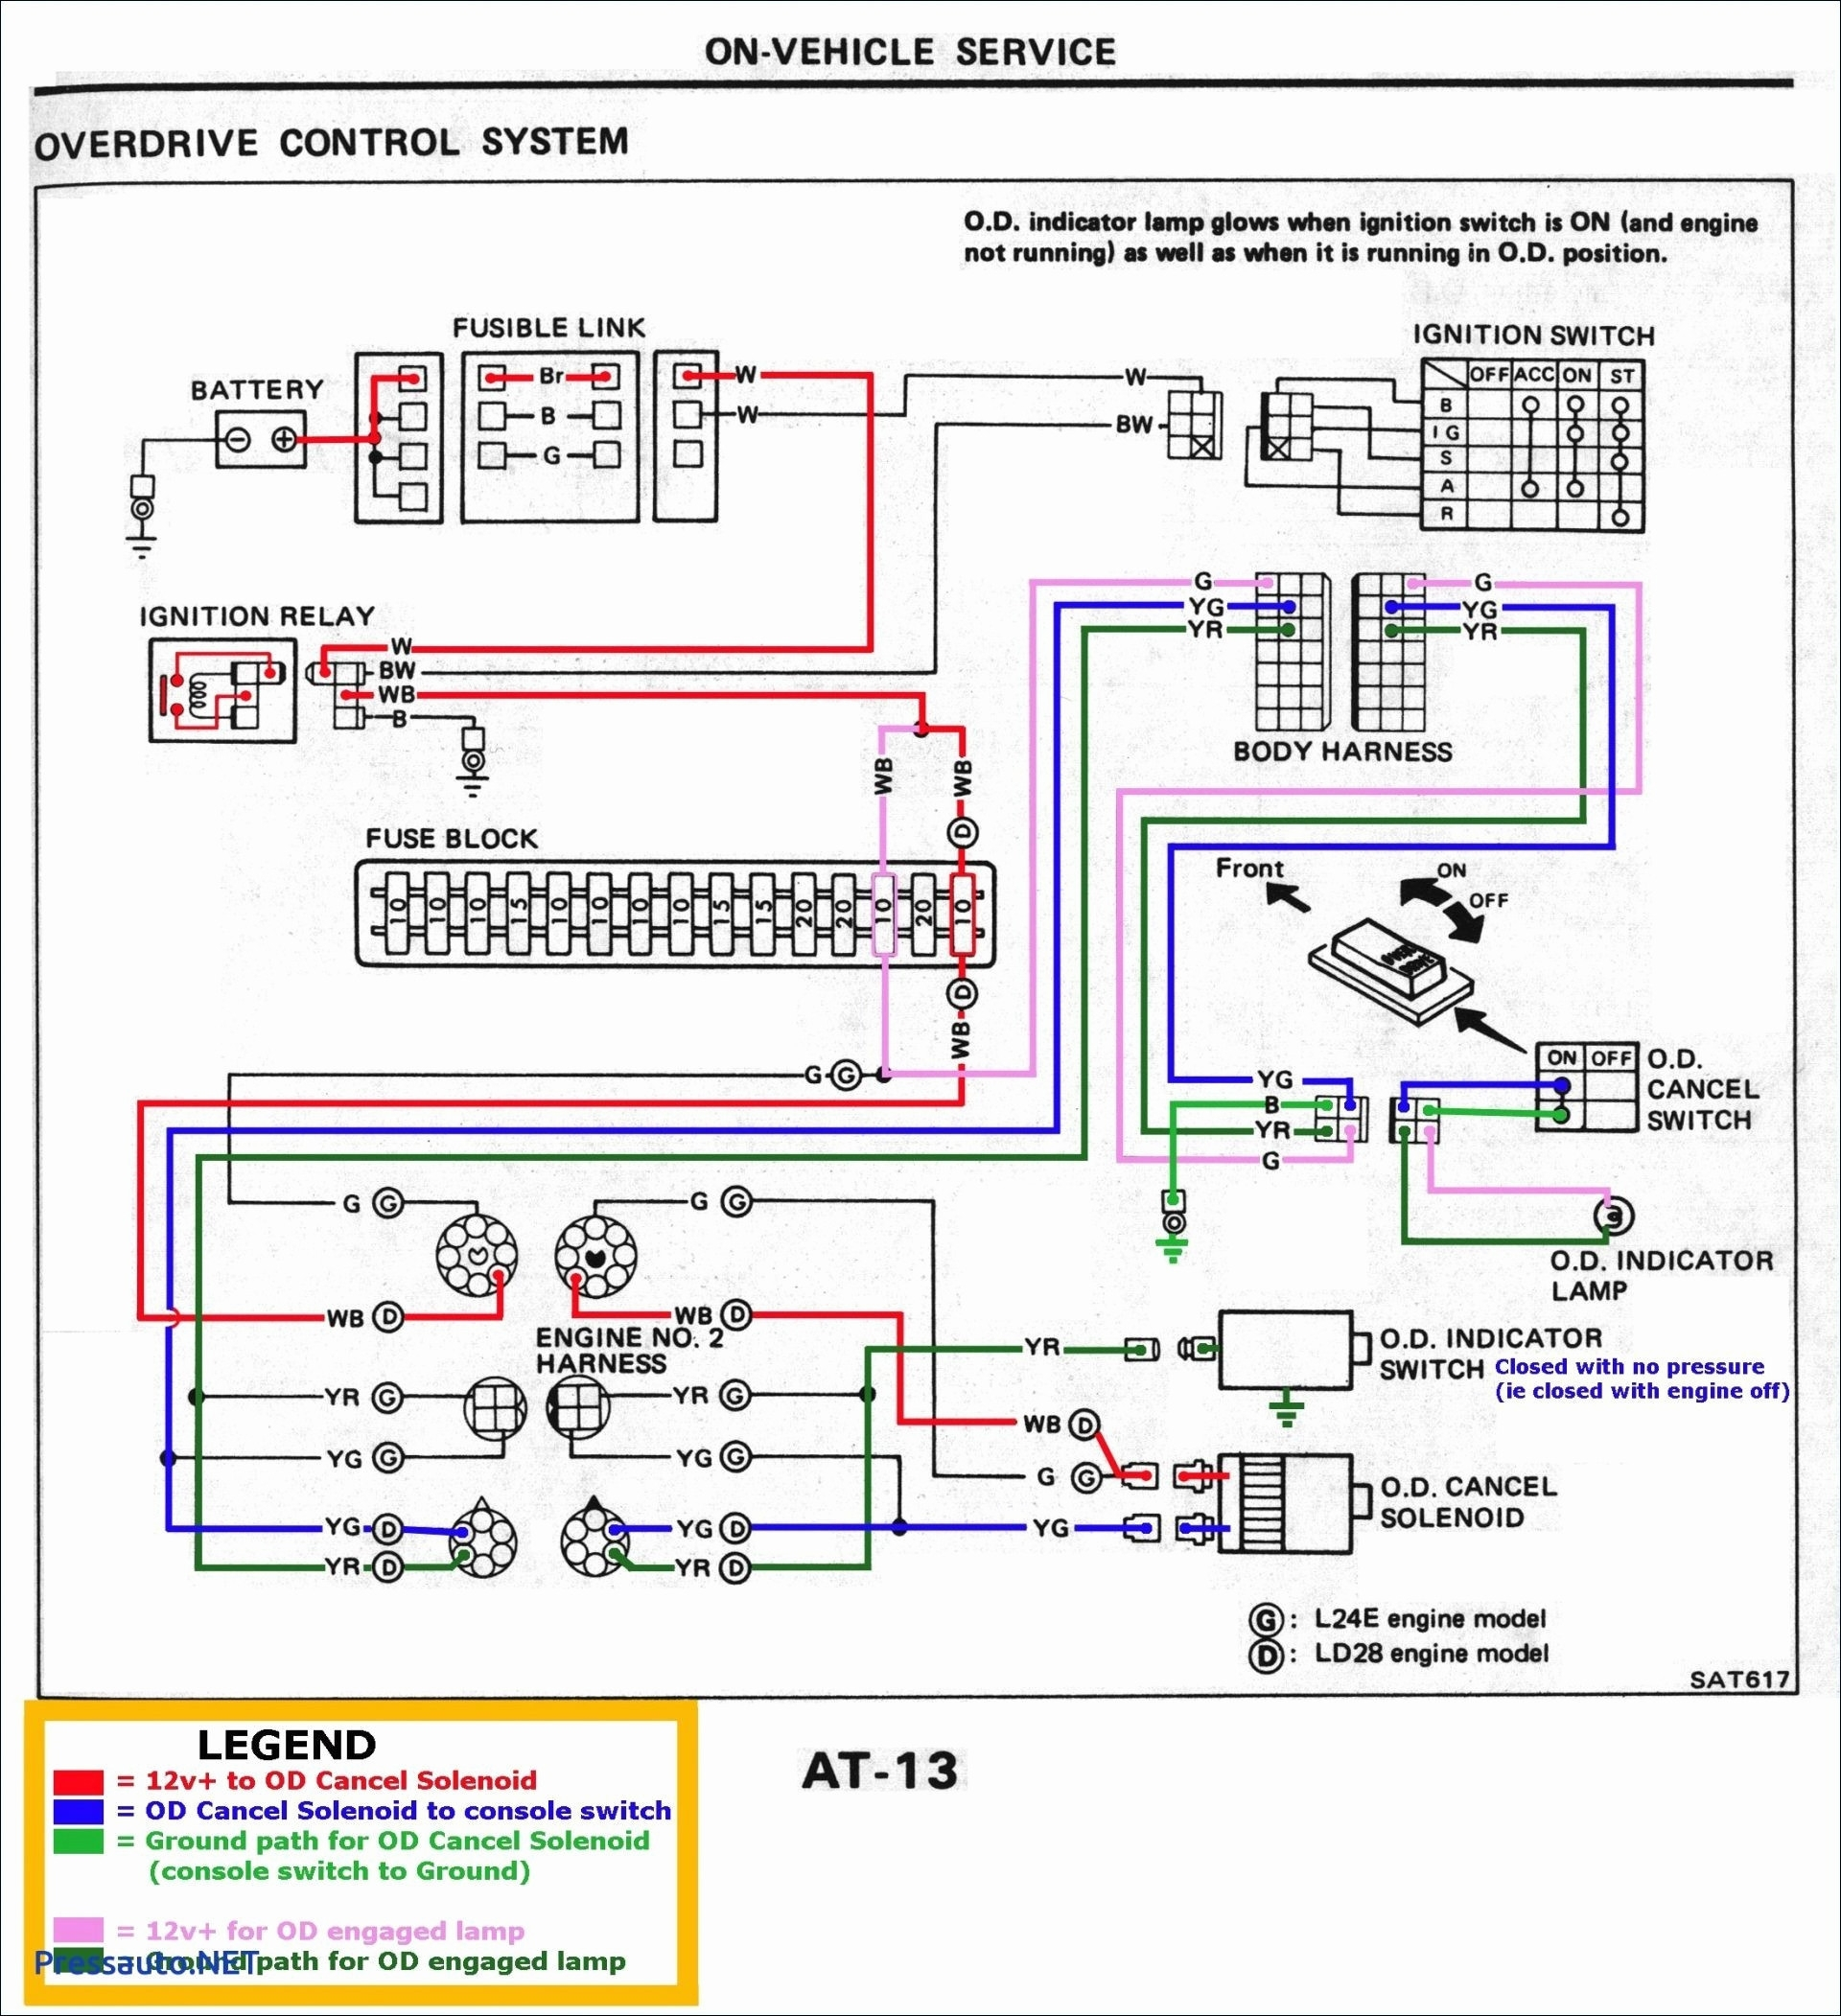 strobe light wiring diagram Collection-Wiring Diagram Detail Name strobe light 6-d